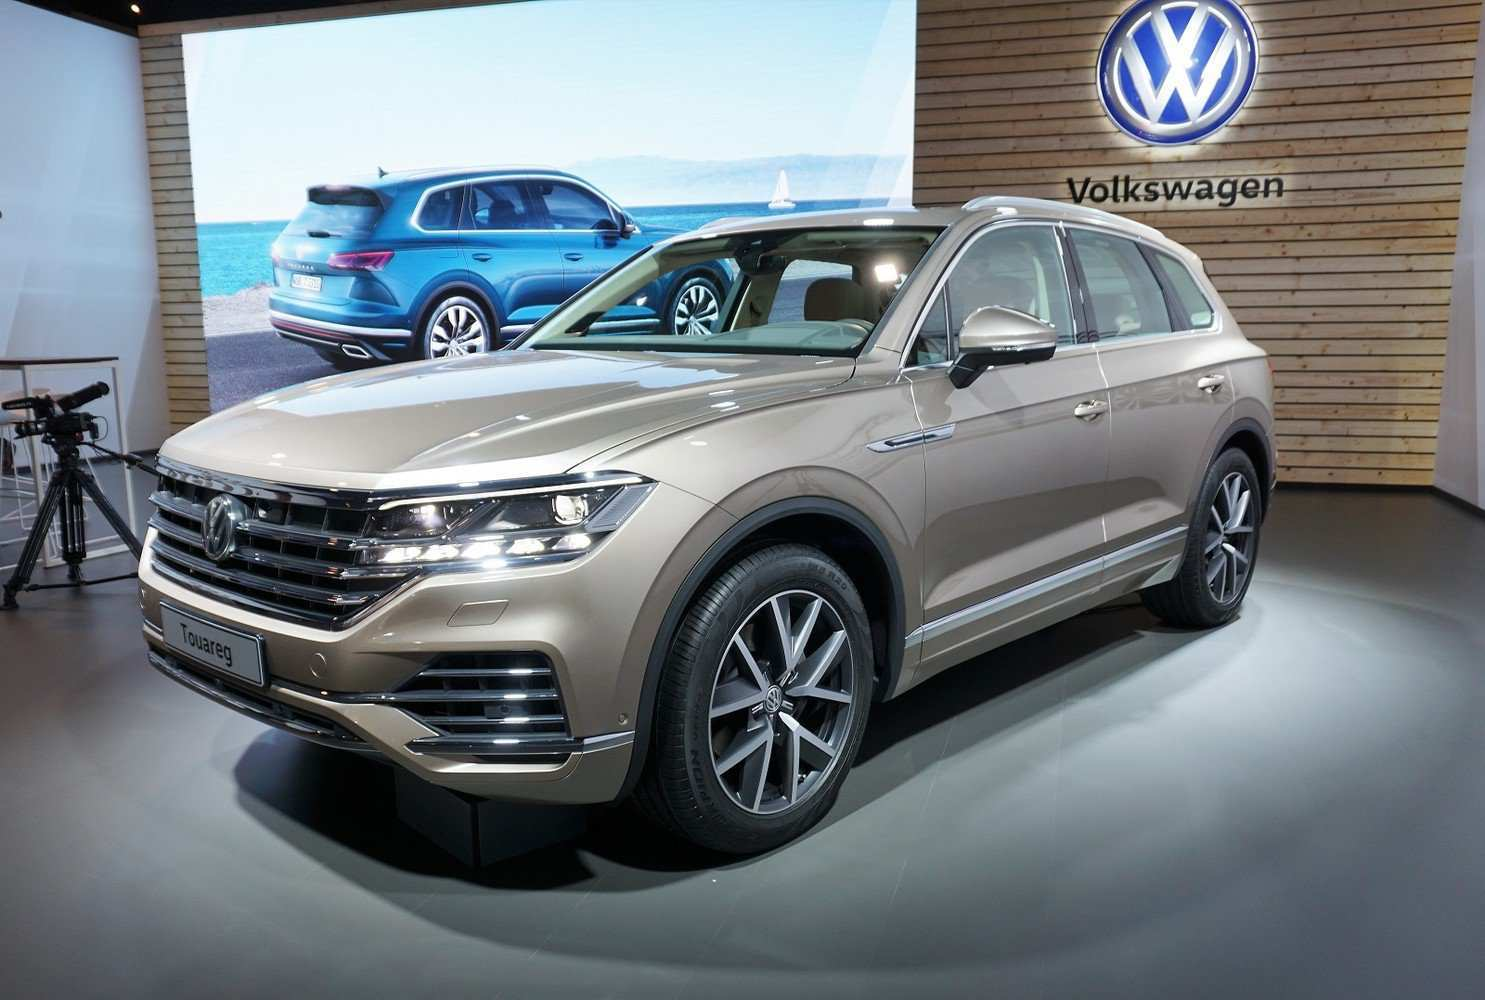 38 The Best Volkswagen 2019 Touareg Price Price Design And Review